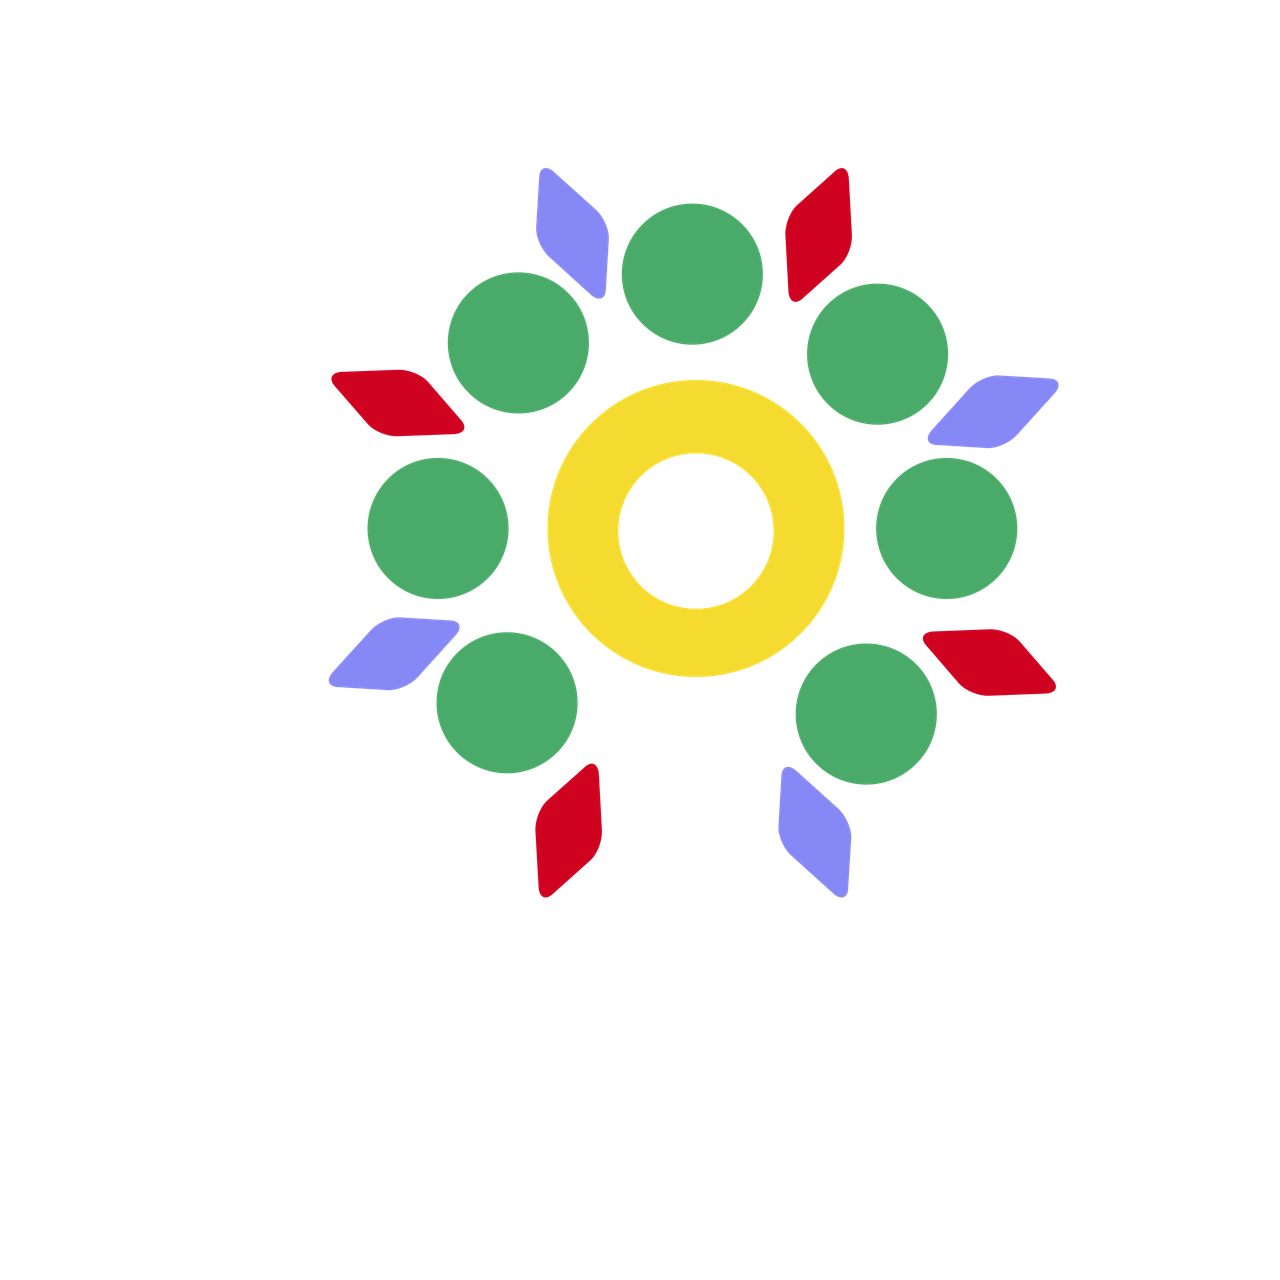 MusicNetworkLogoColorWhiteWhite.png